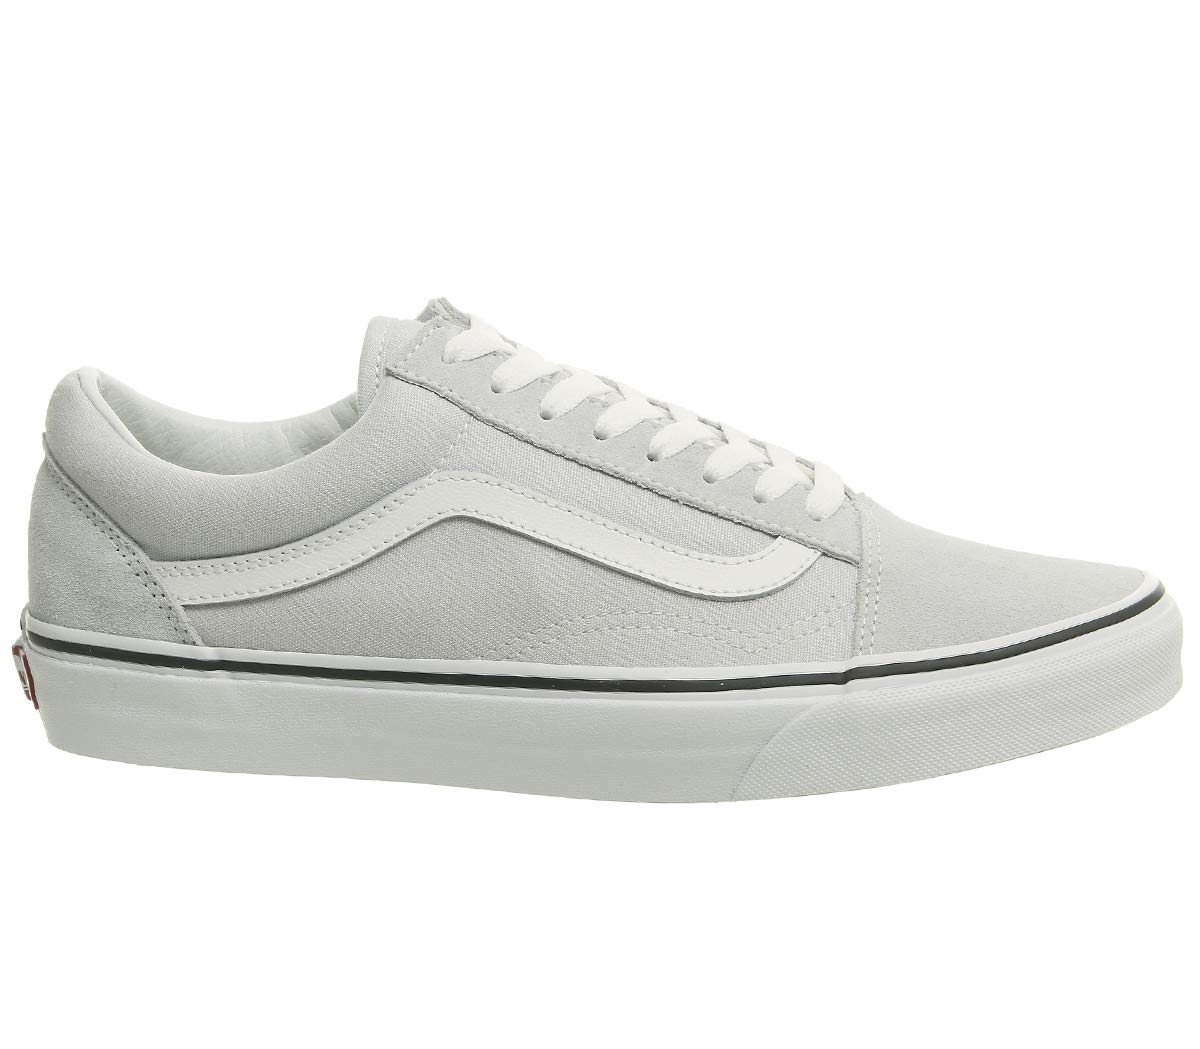 c75df2eead Galleon - Vans Old Skool Gray Dawn True White (6.5 M US Women   5 M US Men